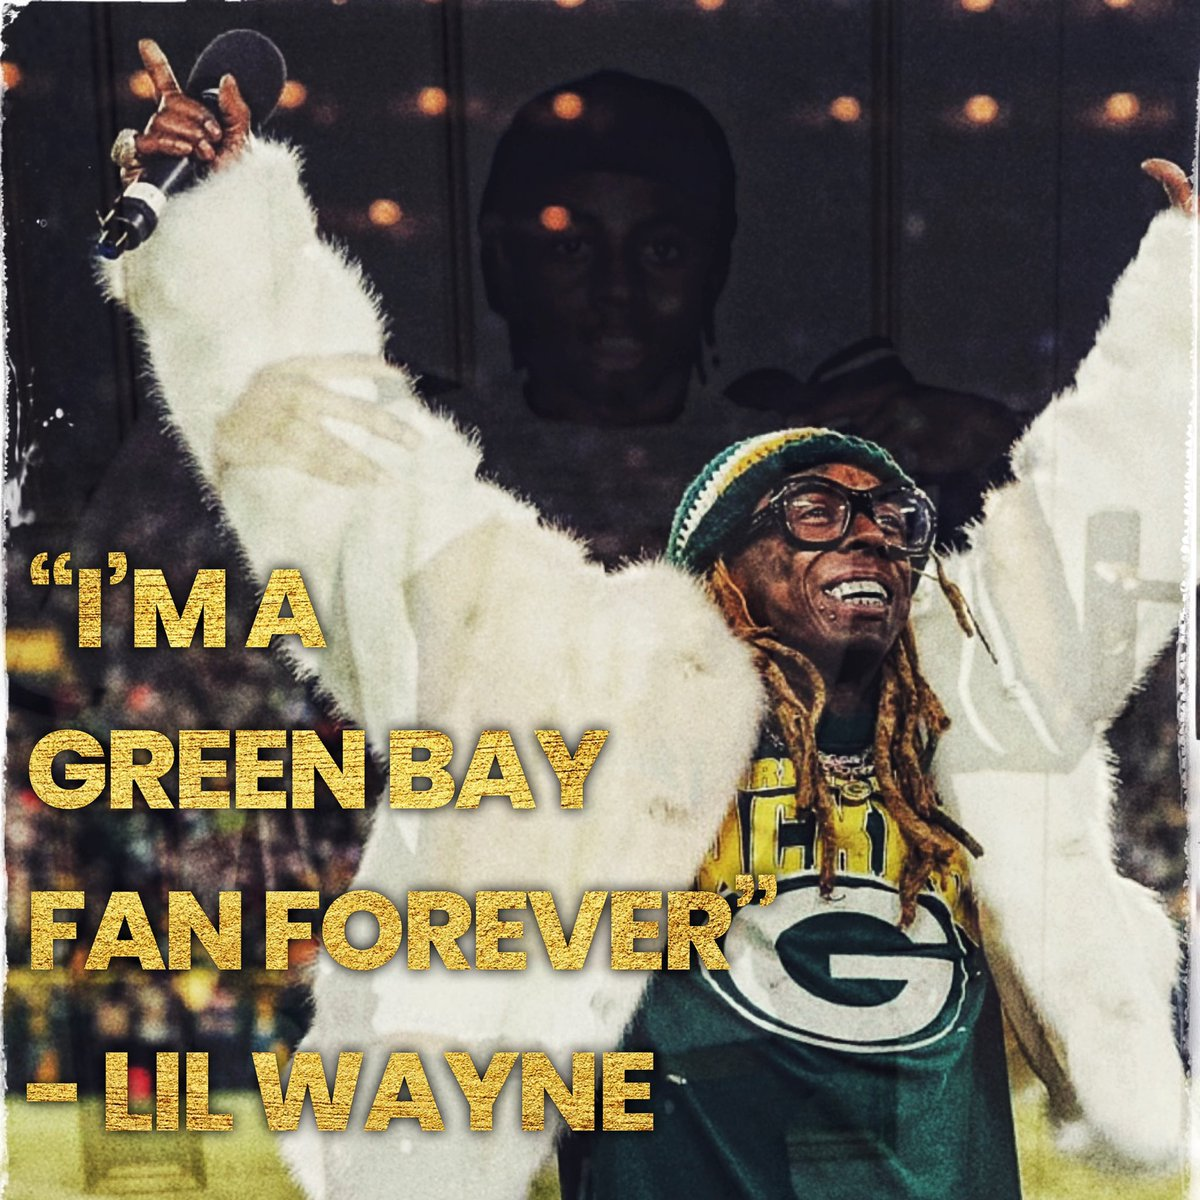 When @LilTunechi was 14, the @packers won the Super Bowl in his hometown NOLA  His stepdad, Rabbit, brought home Packers merch, & Weezy became a Cheesehead 🧀   24 years later, Wayne's new anthem #GreenAndYellow is fueling the team thru the playoffs  #GoPackGo 🟢🟡